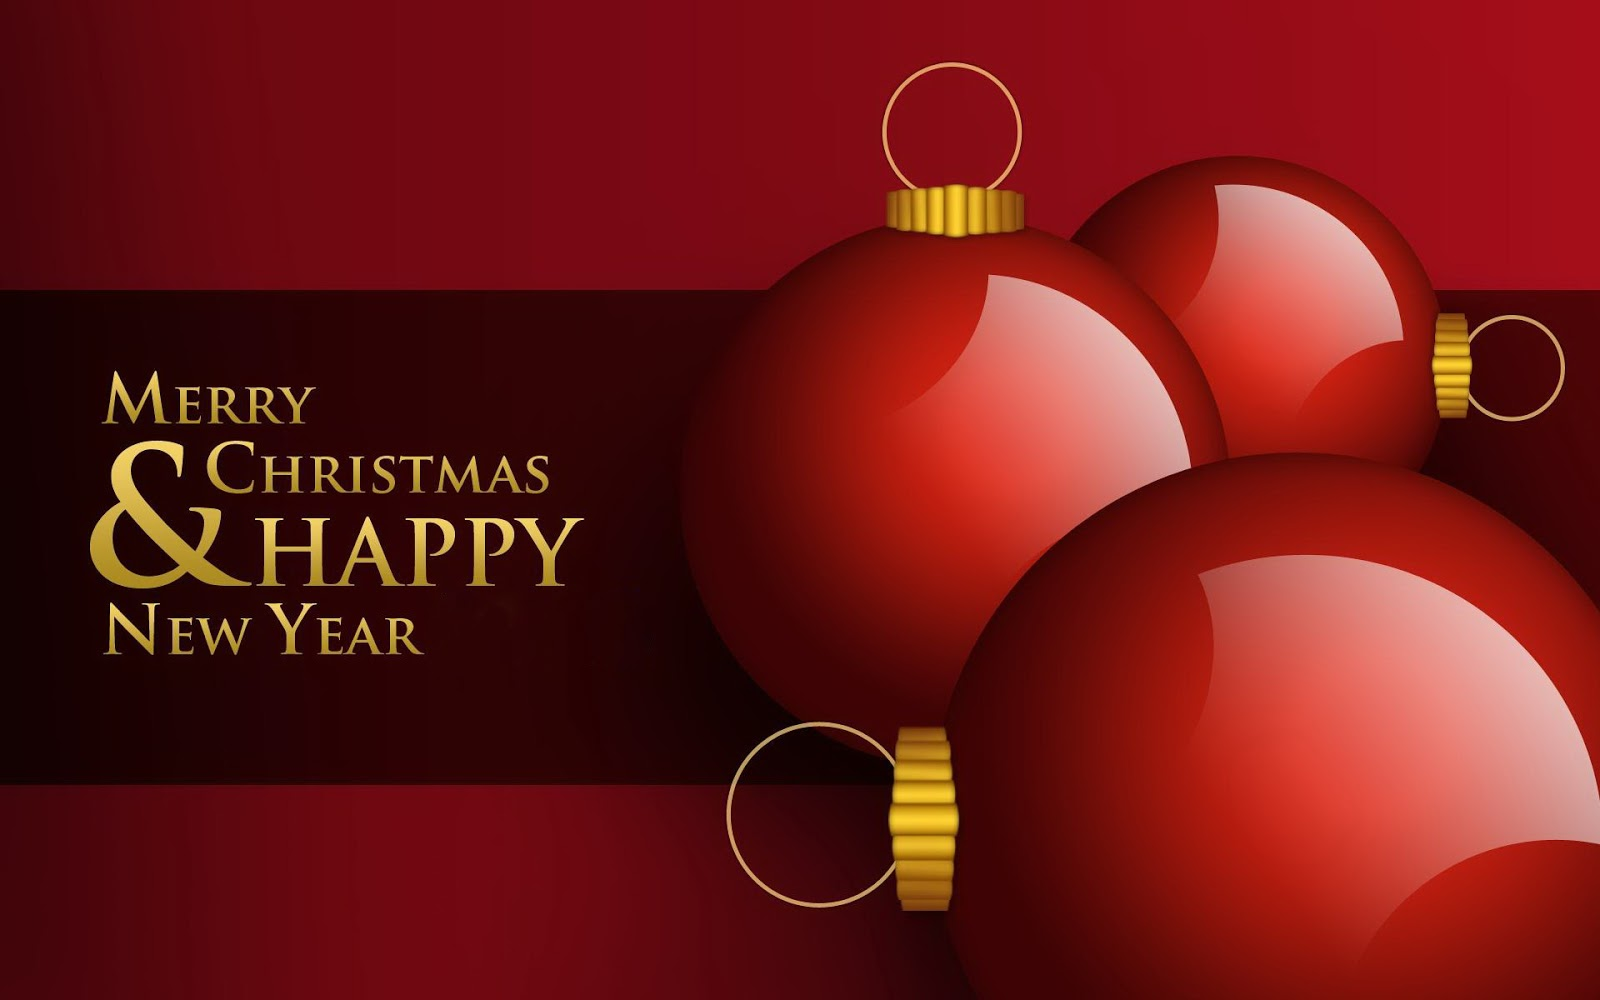 Merry Christmas and Happy New Year Images Free Download